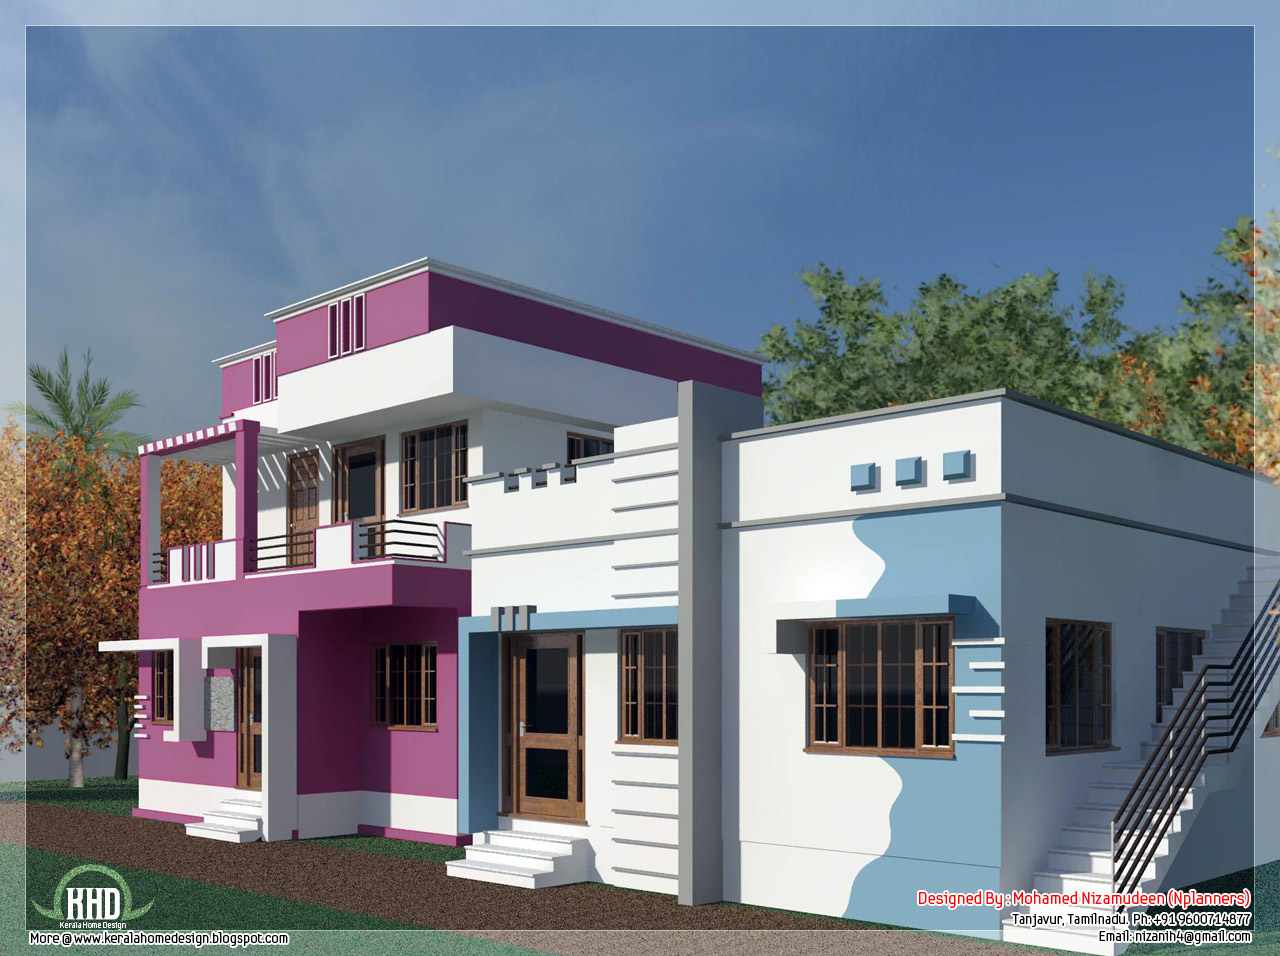 ... design specialties south indian model minimalist box house design